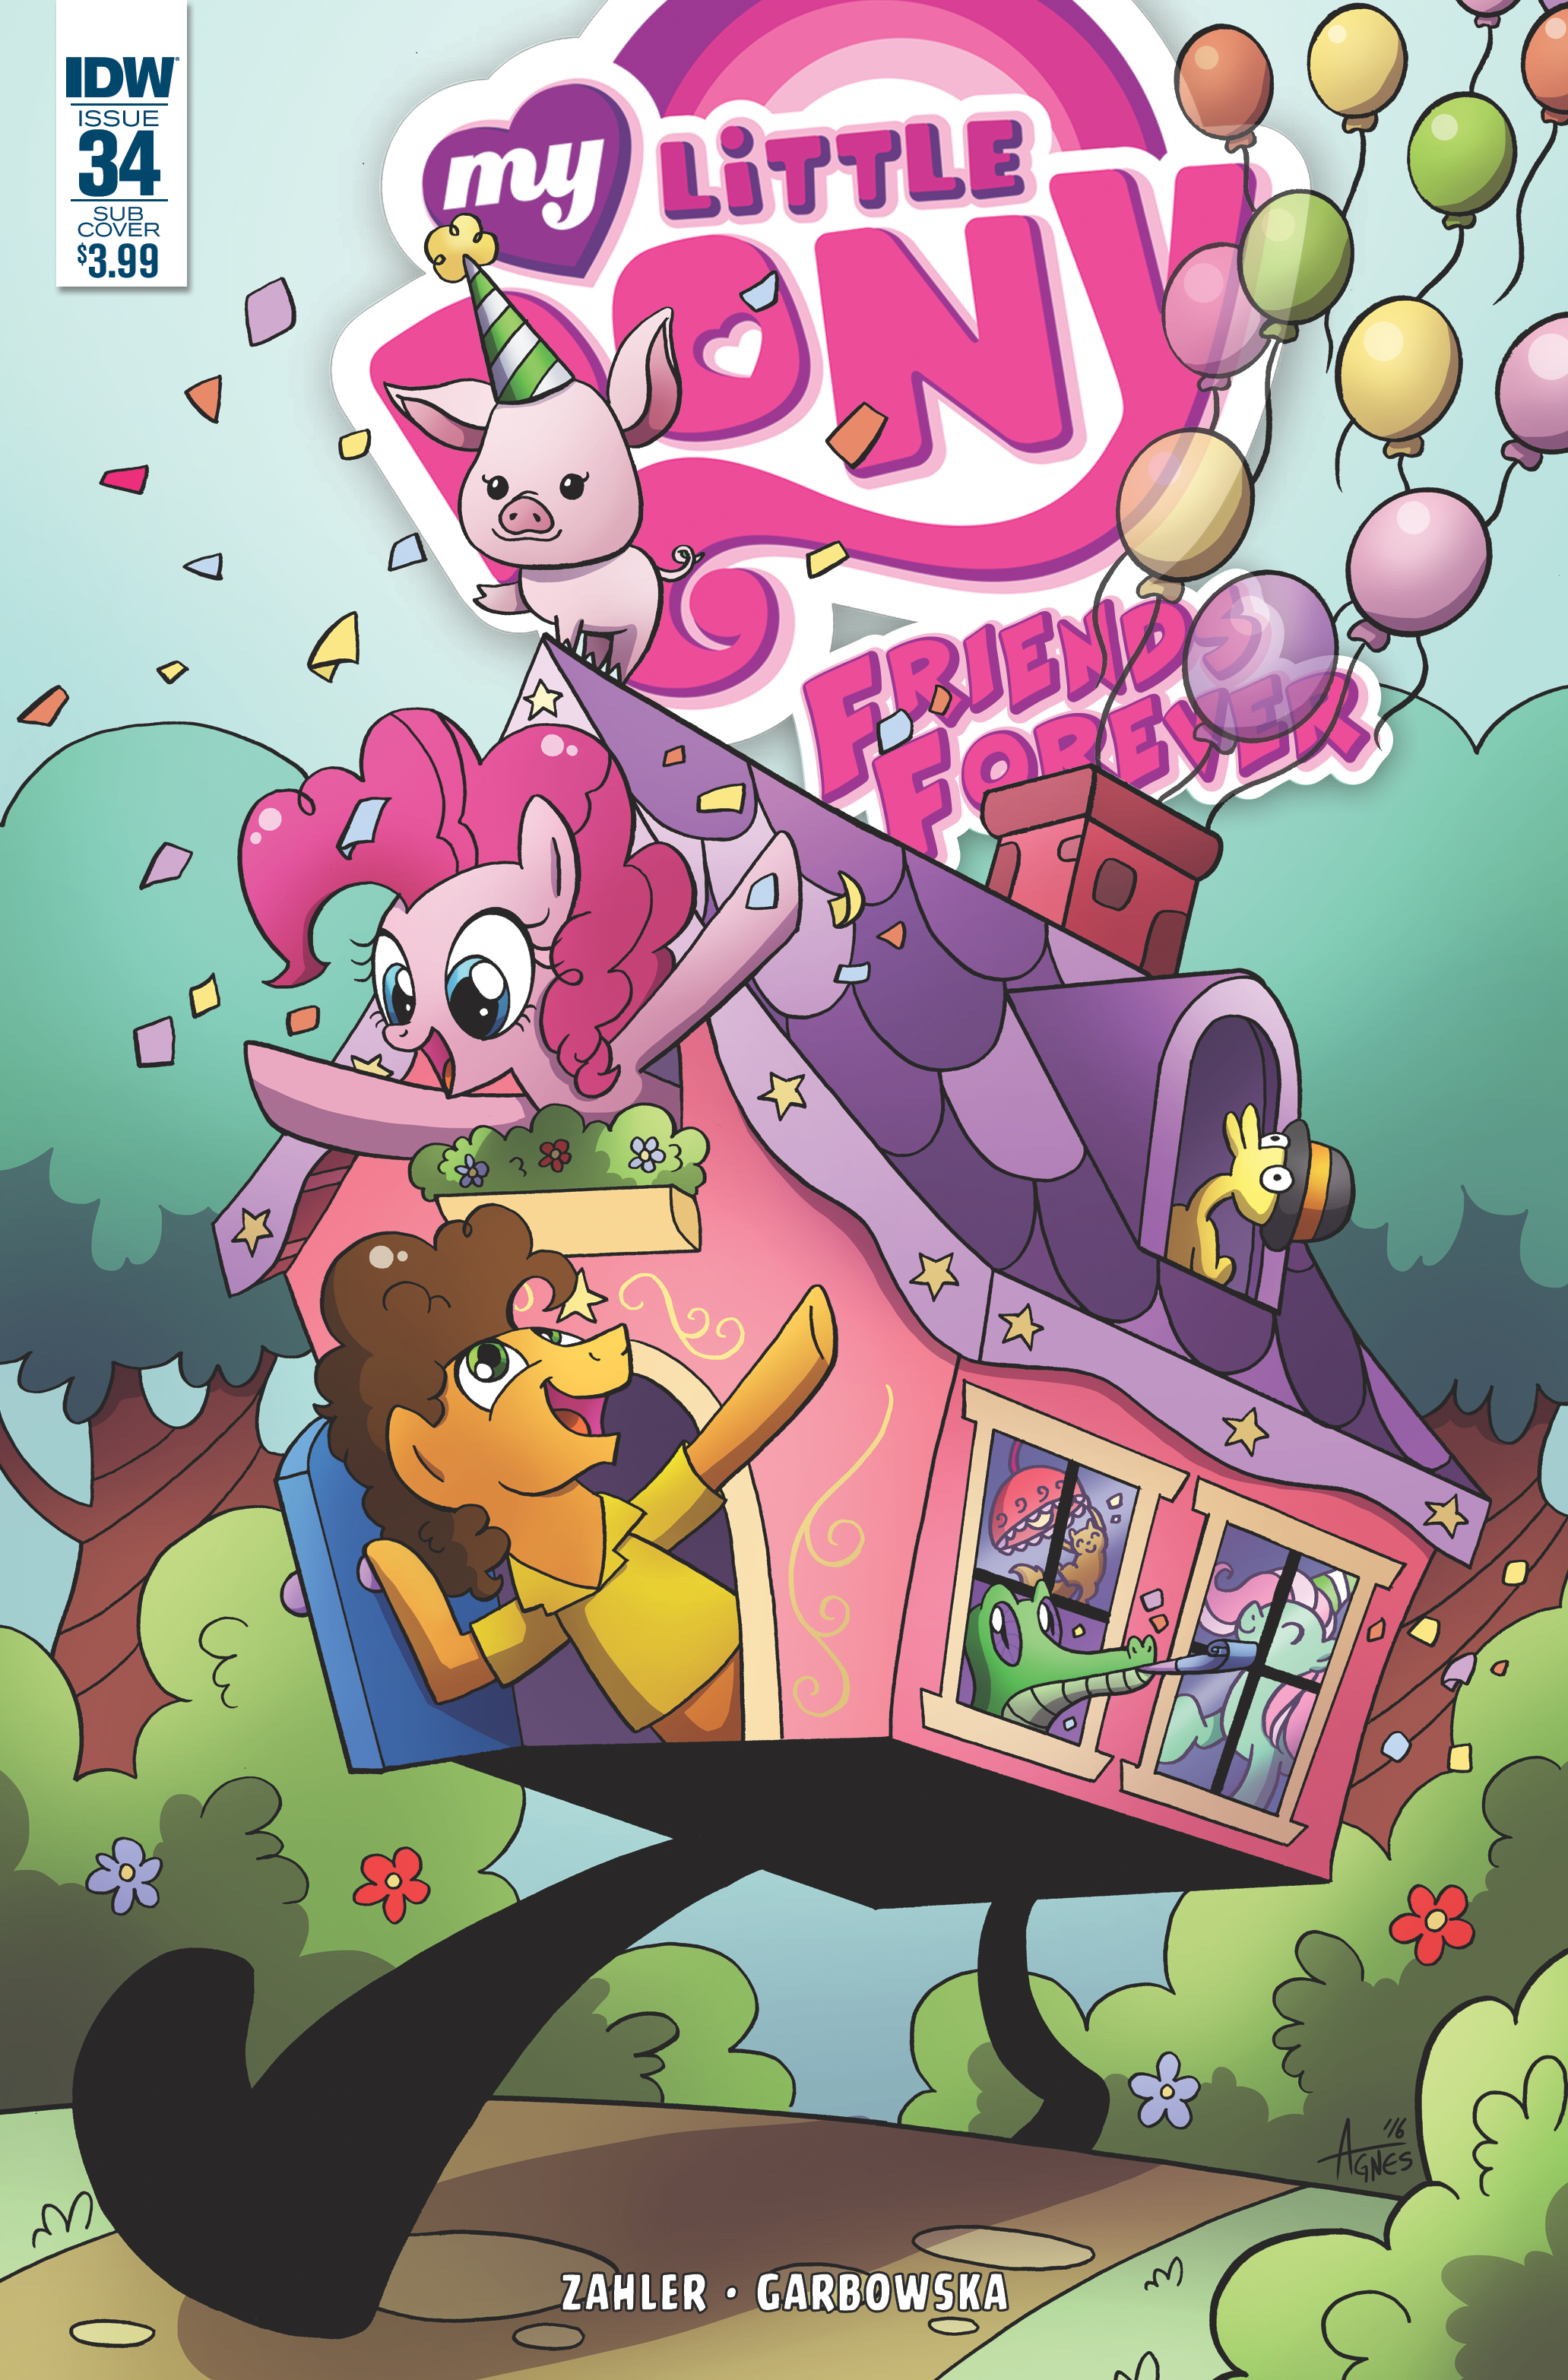 Friends Forever Issue 34